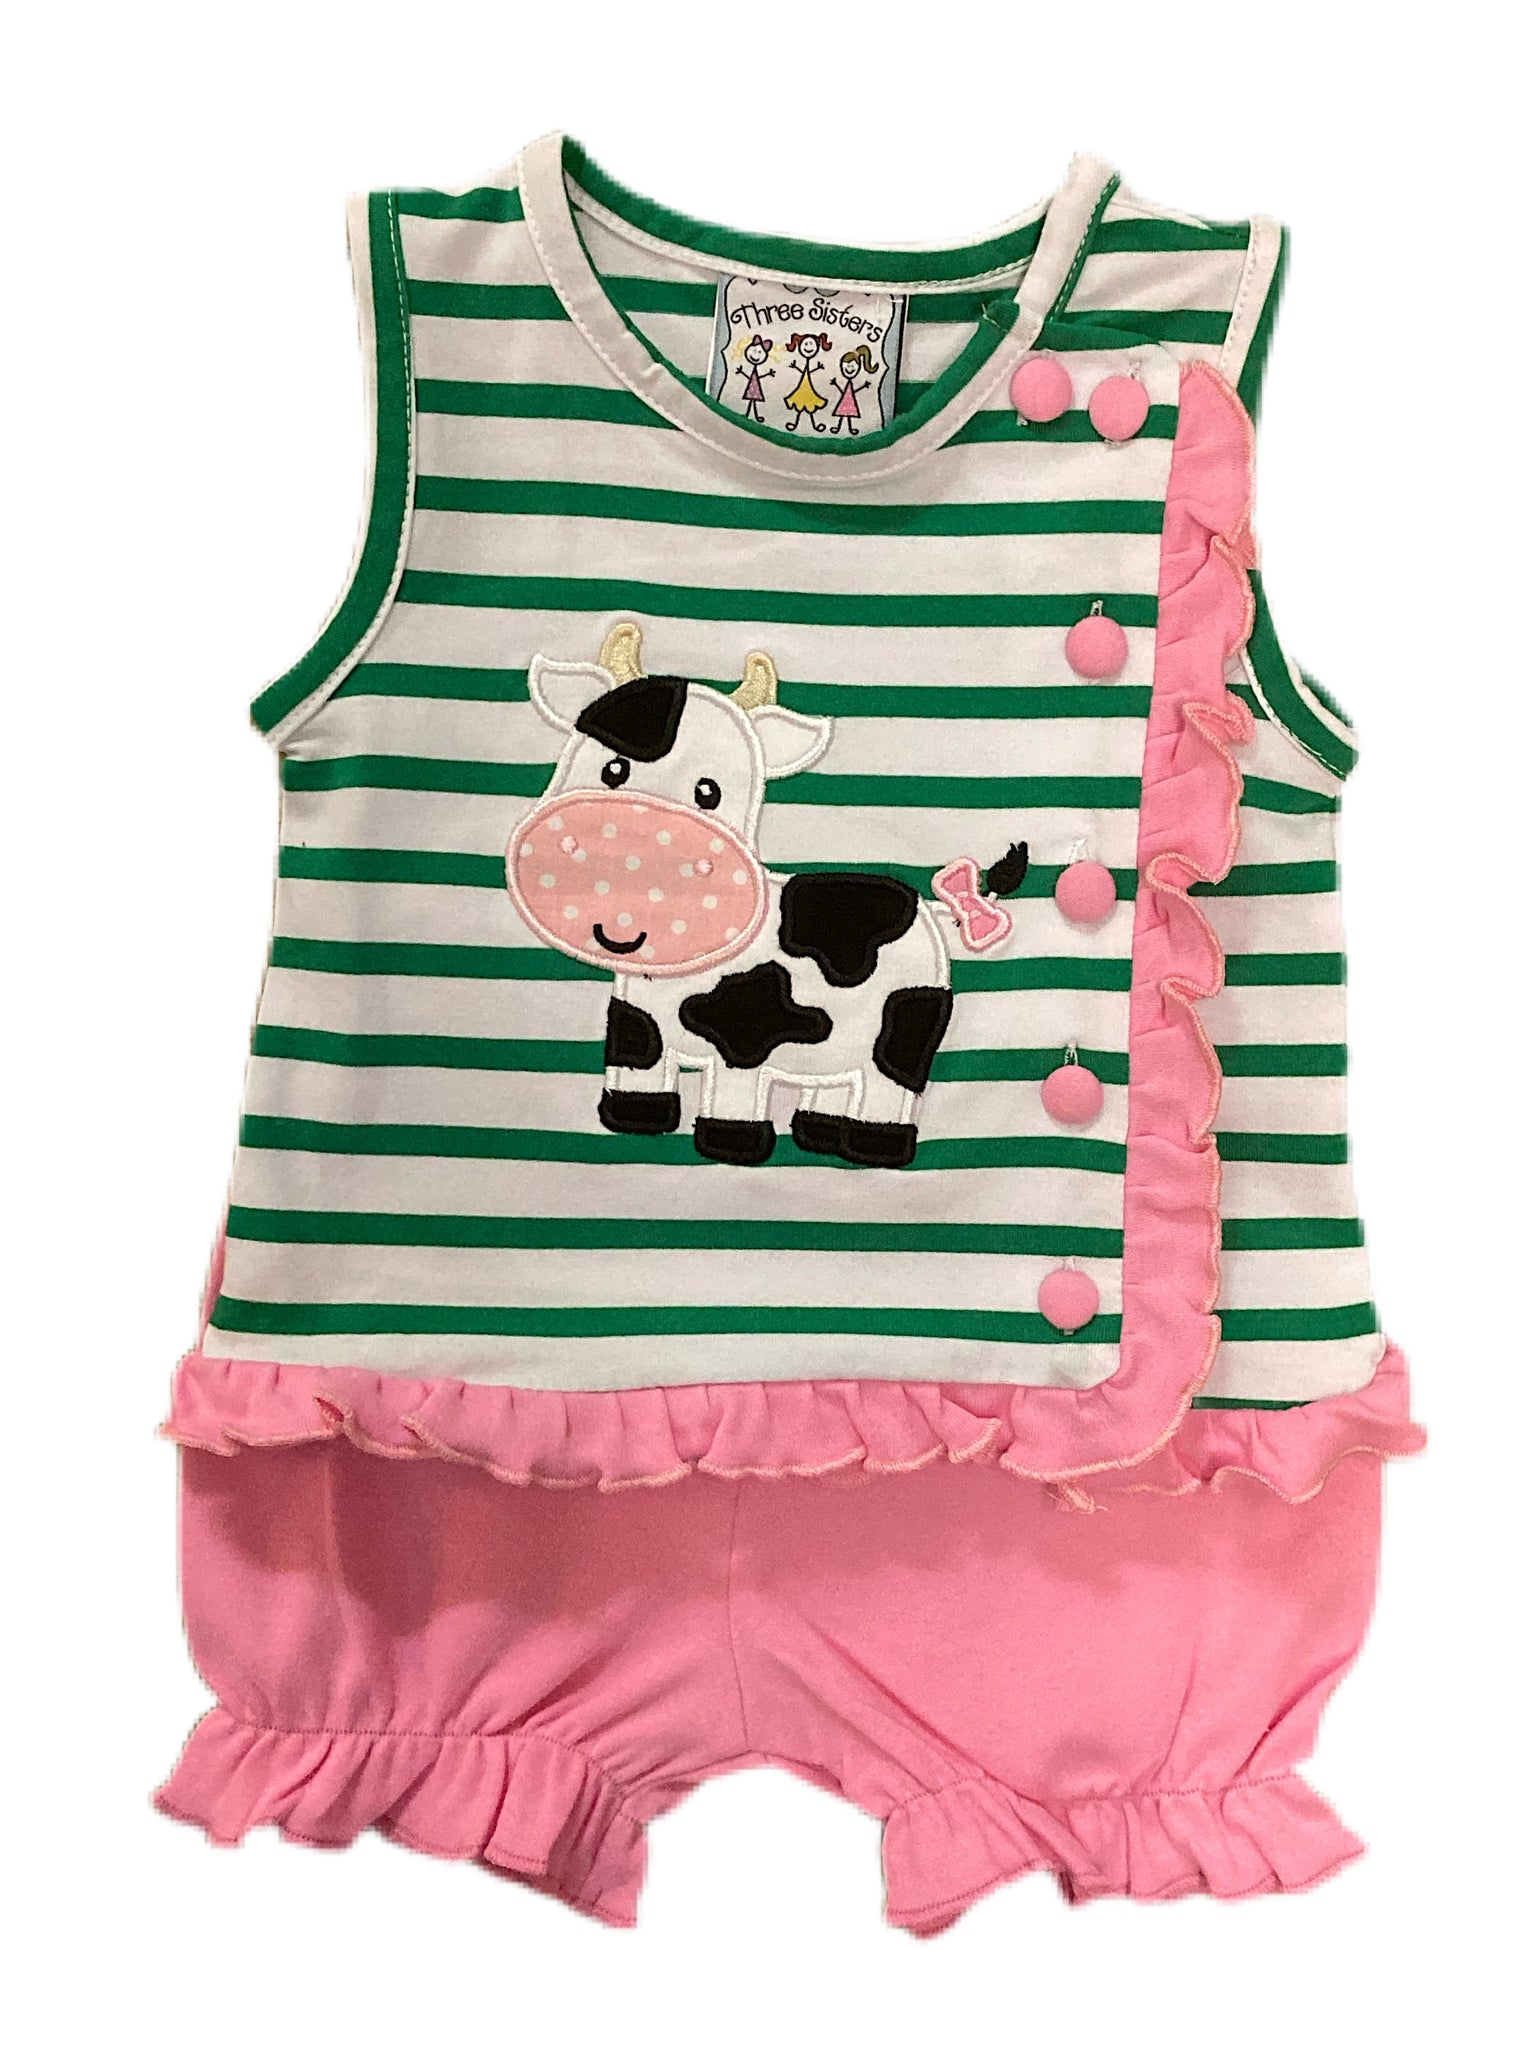 Moo Cow Applique Girls Bloomer Set